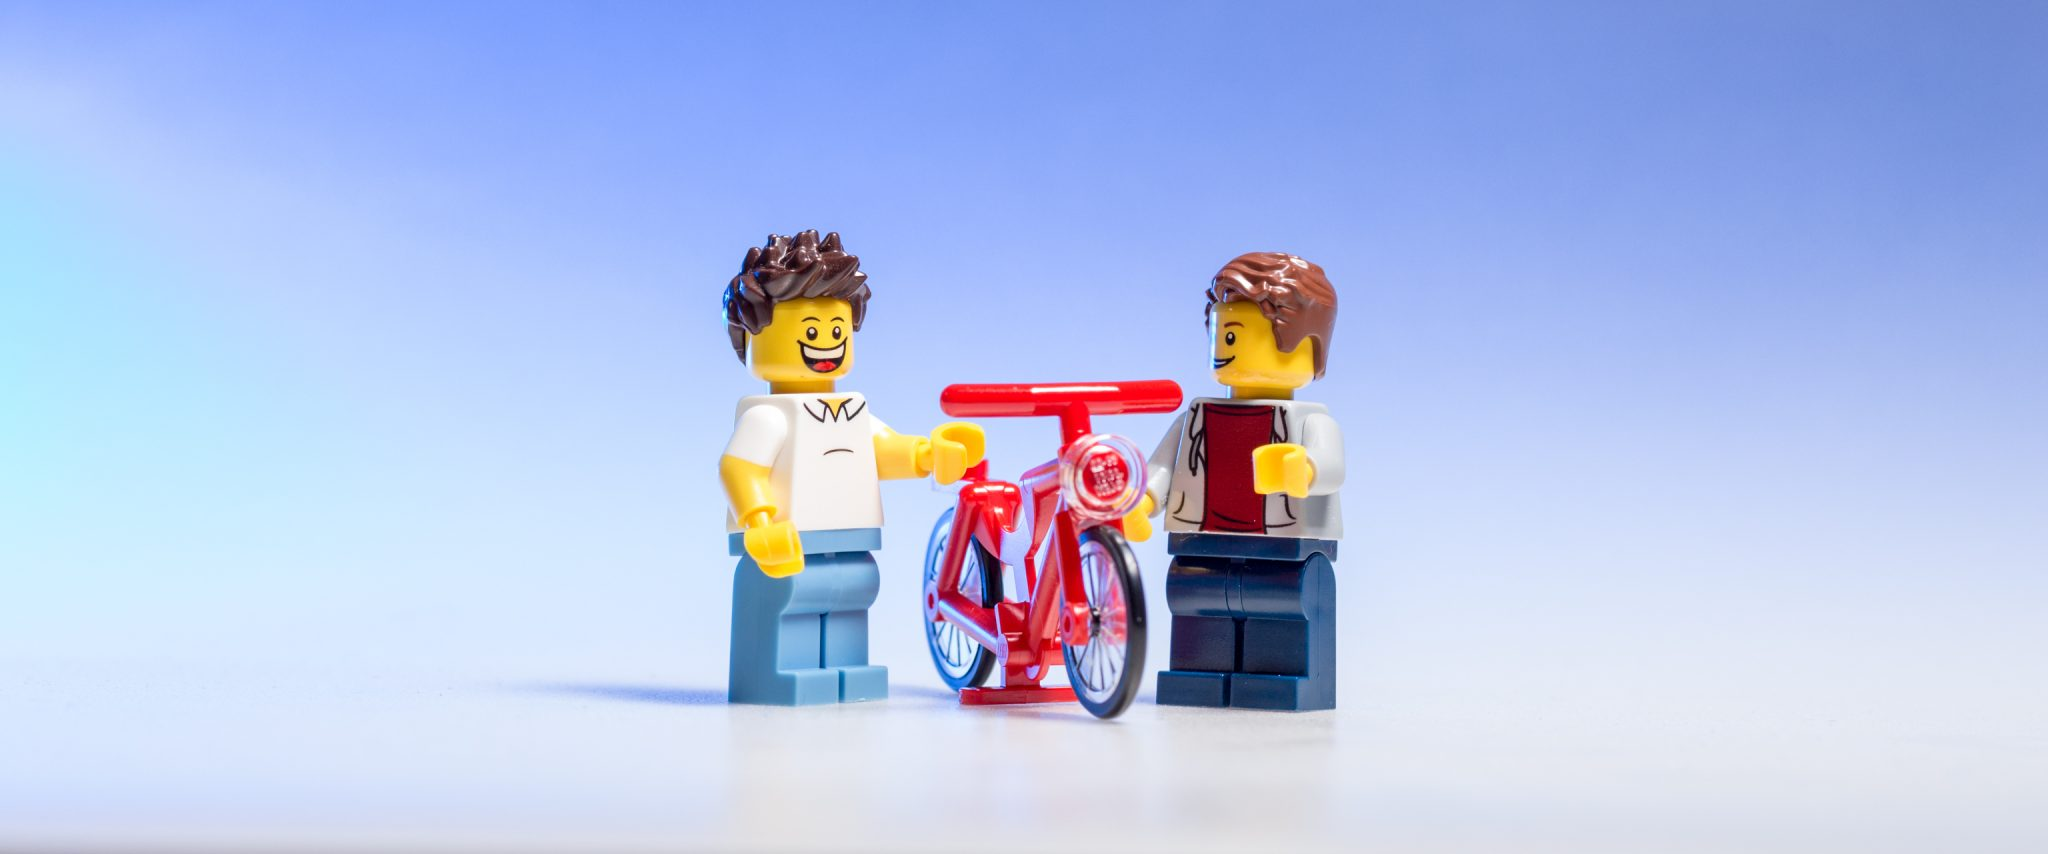 Two LEGOs discussing a bicycle.